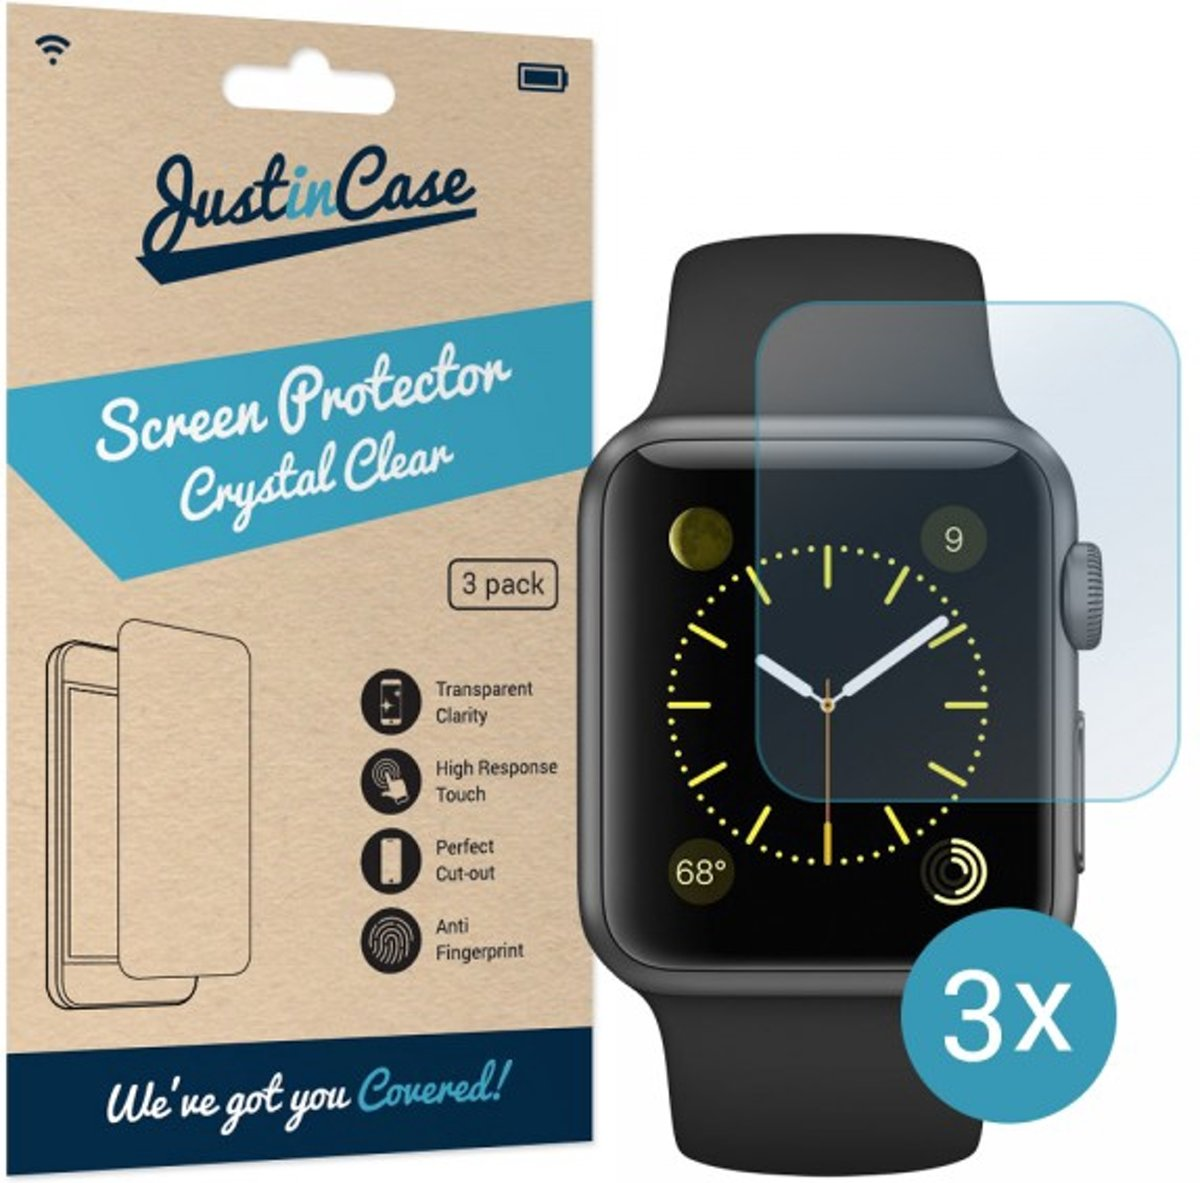 Just in Case Screen Protector voor de Apple Watch 42mm - Crystal Clear - 3 stuks kopen